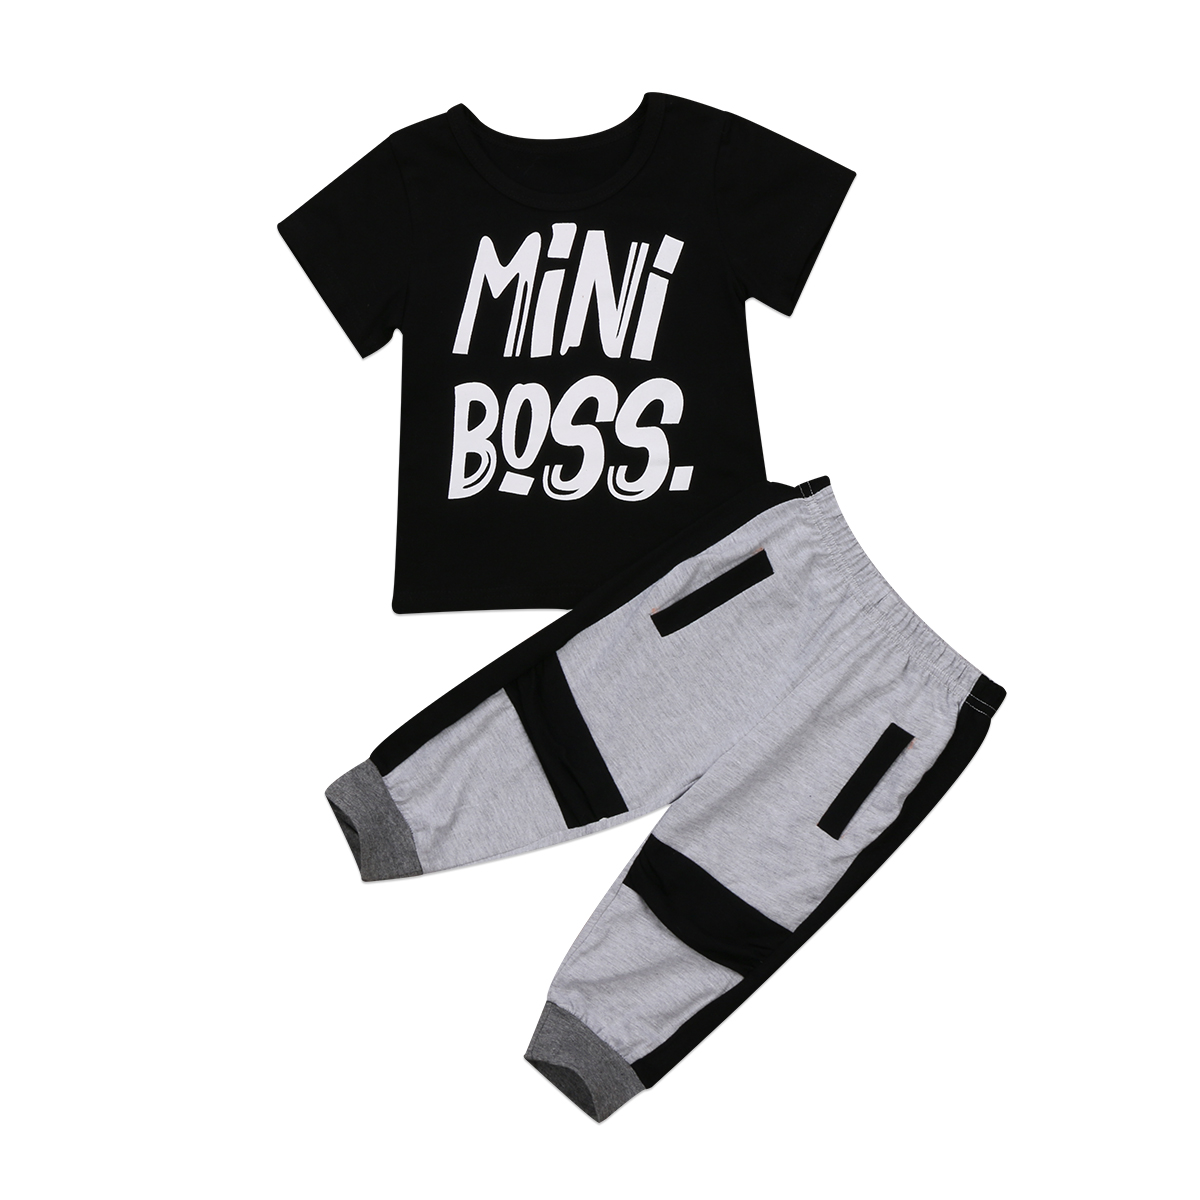 2Pcs Toddler Kids Baby Boy Clothes Sets T-shirt Tops Short Sleeve Pants Harem Outfits Set Cotton Clothing Baby Boys 1-6T newborn kids baby boy summer clothes set t shirt tops pants outfits boys sets 2pcs 0 3y camouflage